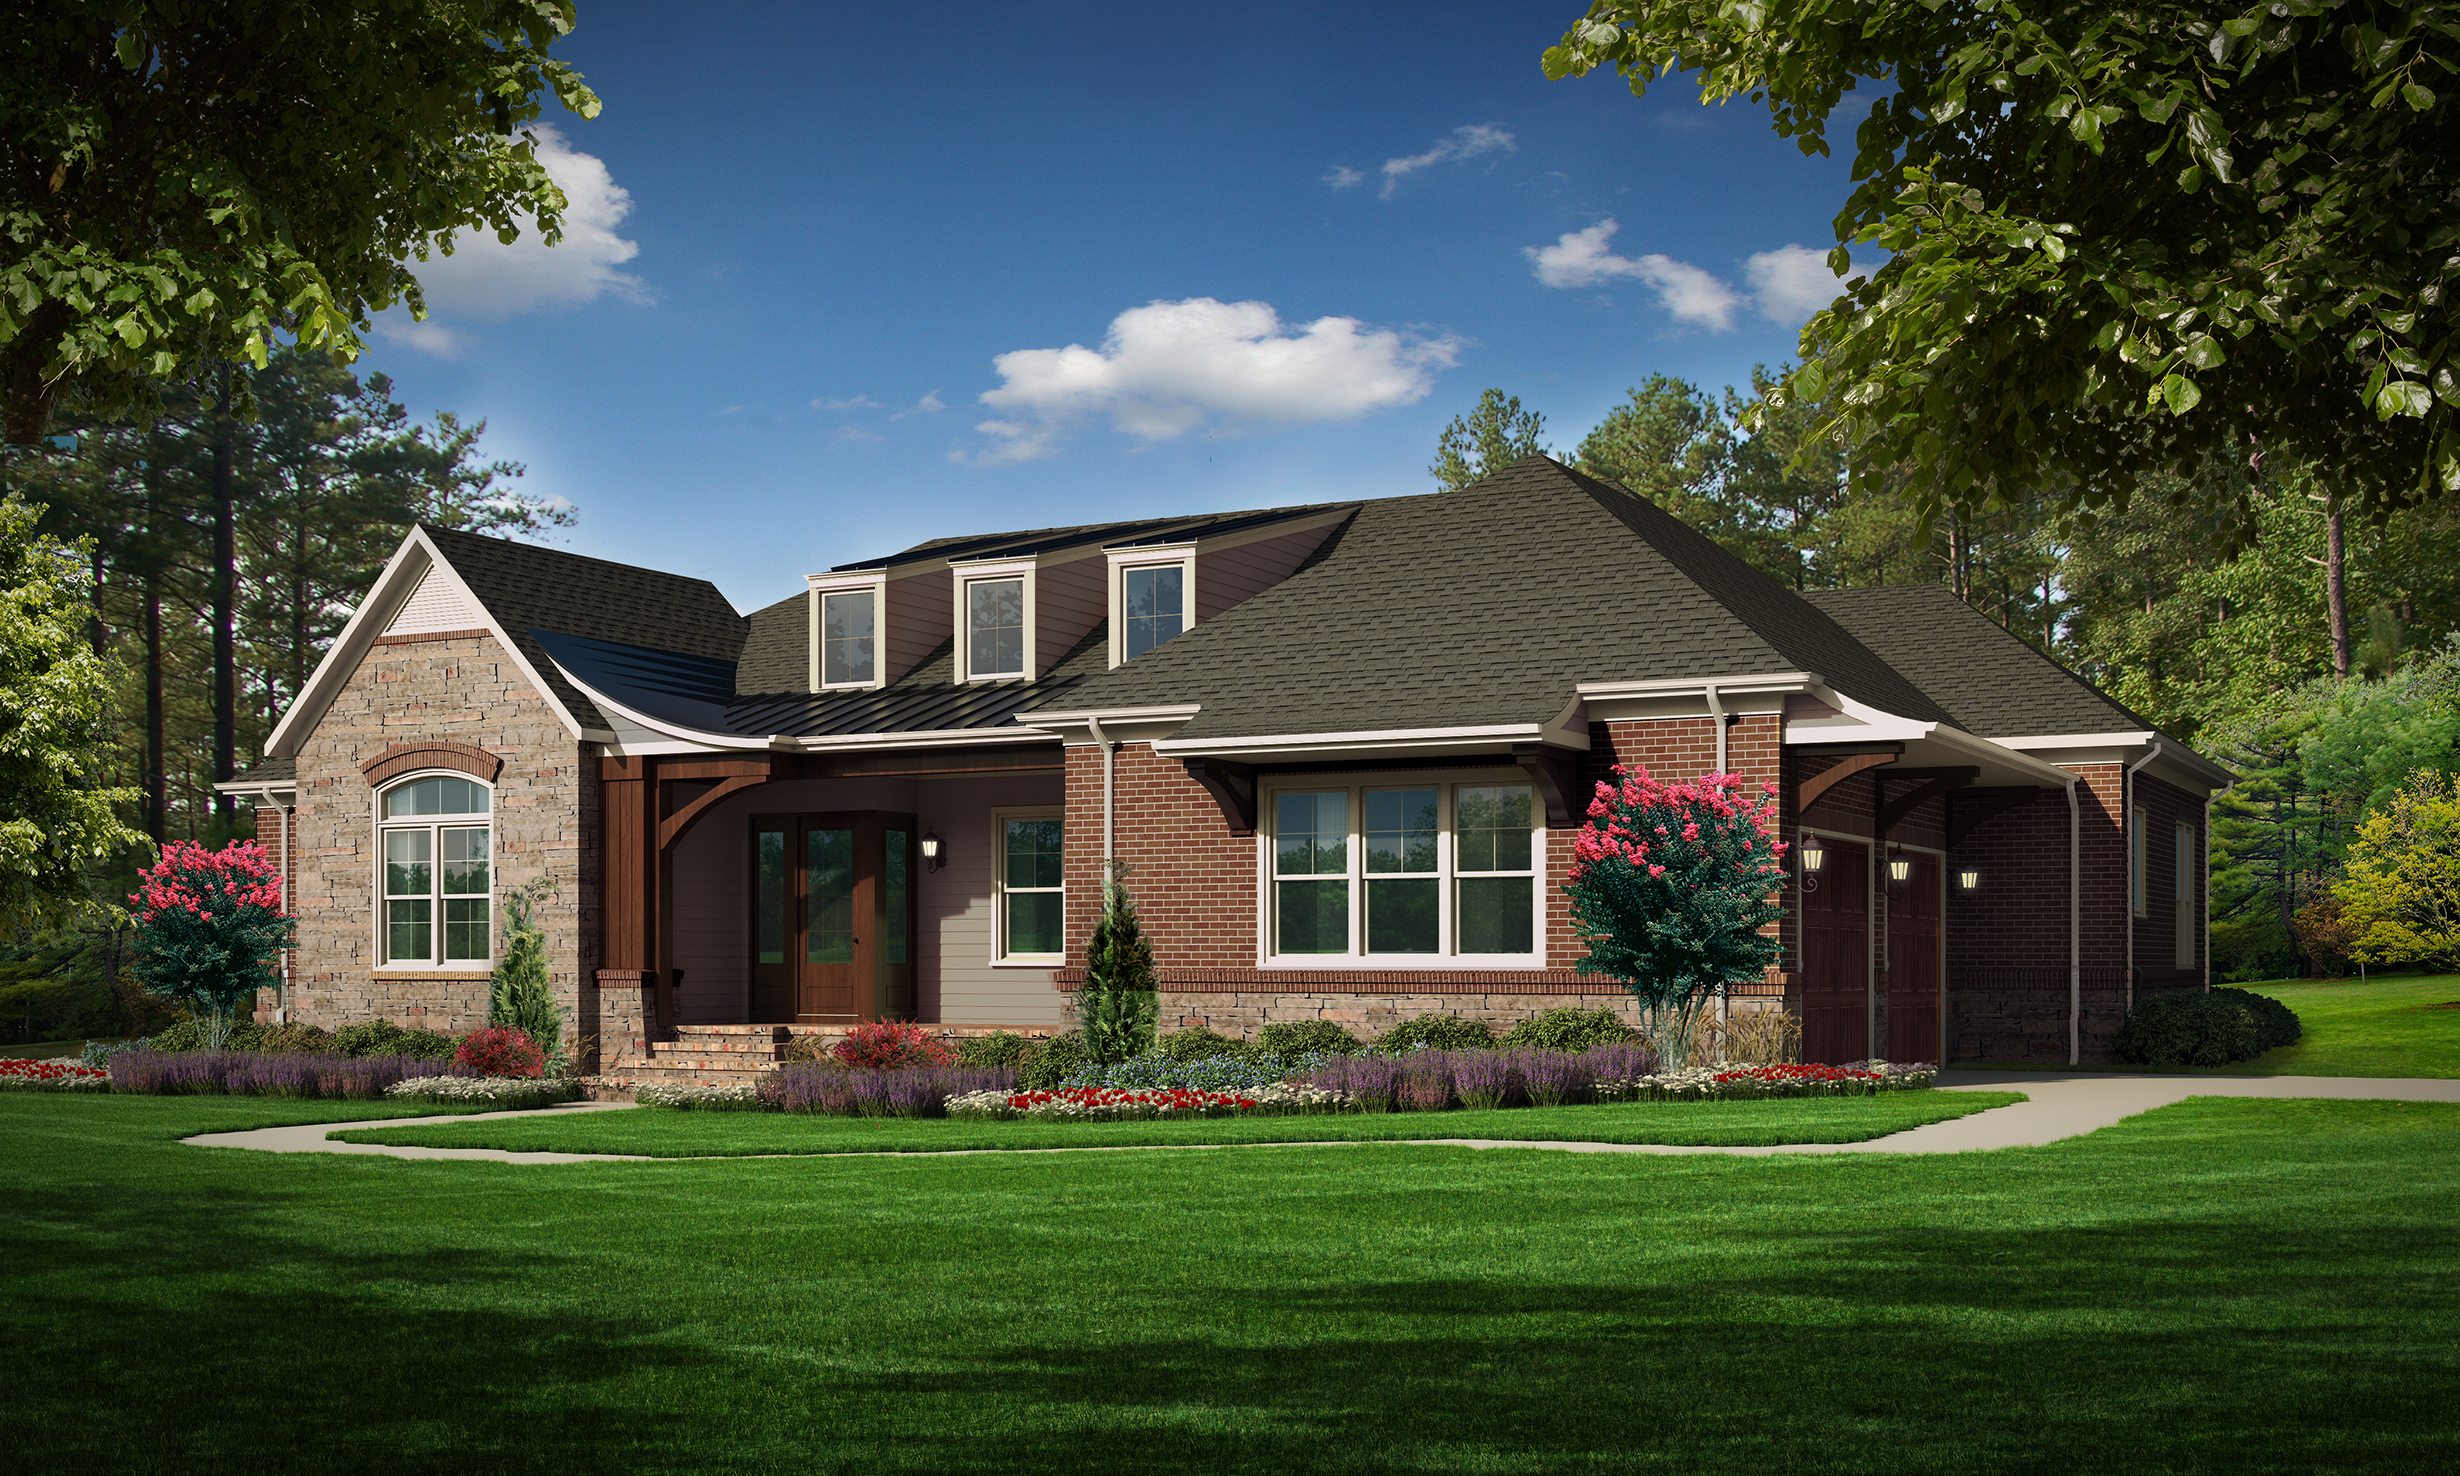 """C Option (Brick)  Total SF 3743 sq. ft. Total SF heated 2569 sq. ft. Bedrooms 3 Bathrooms 3 Width: 75' Depth: 63'-3"""" Attached two-car garage Porches: Covered front porch, Covered back porch"""